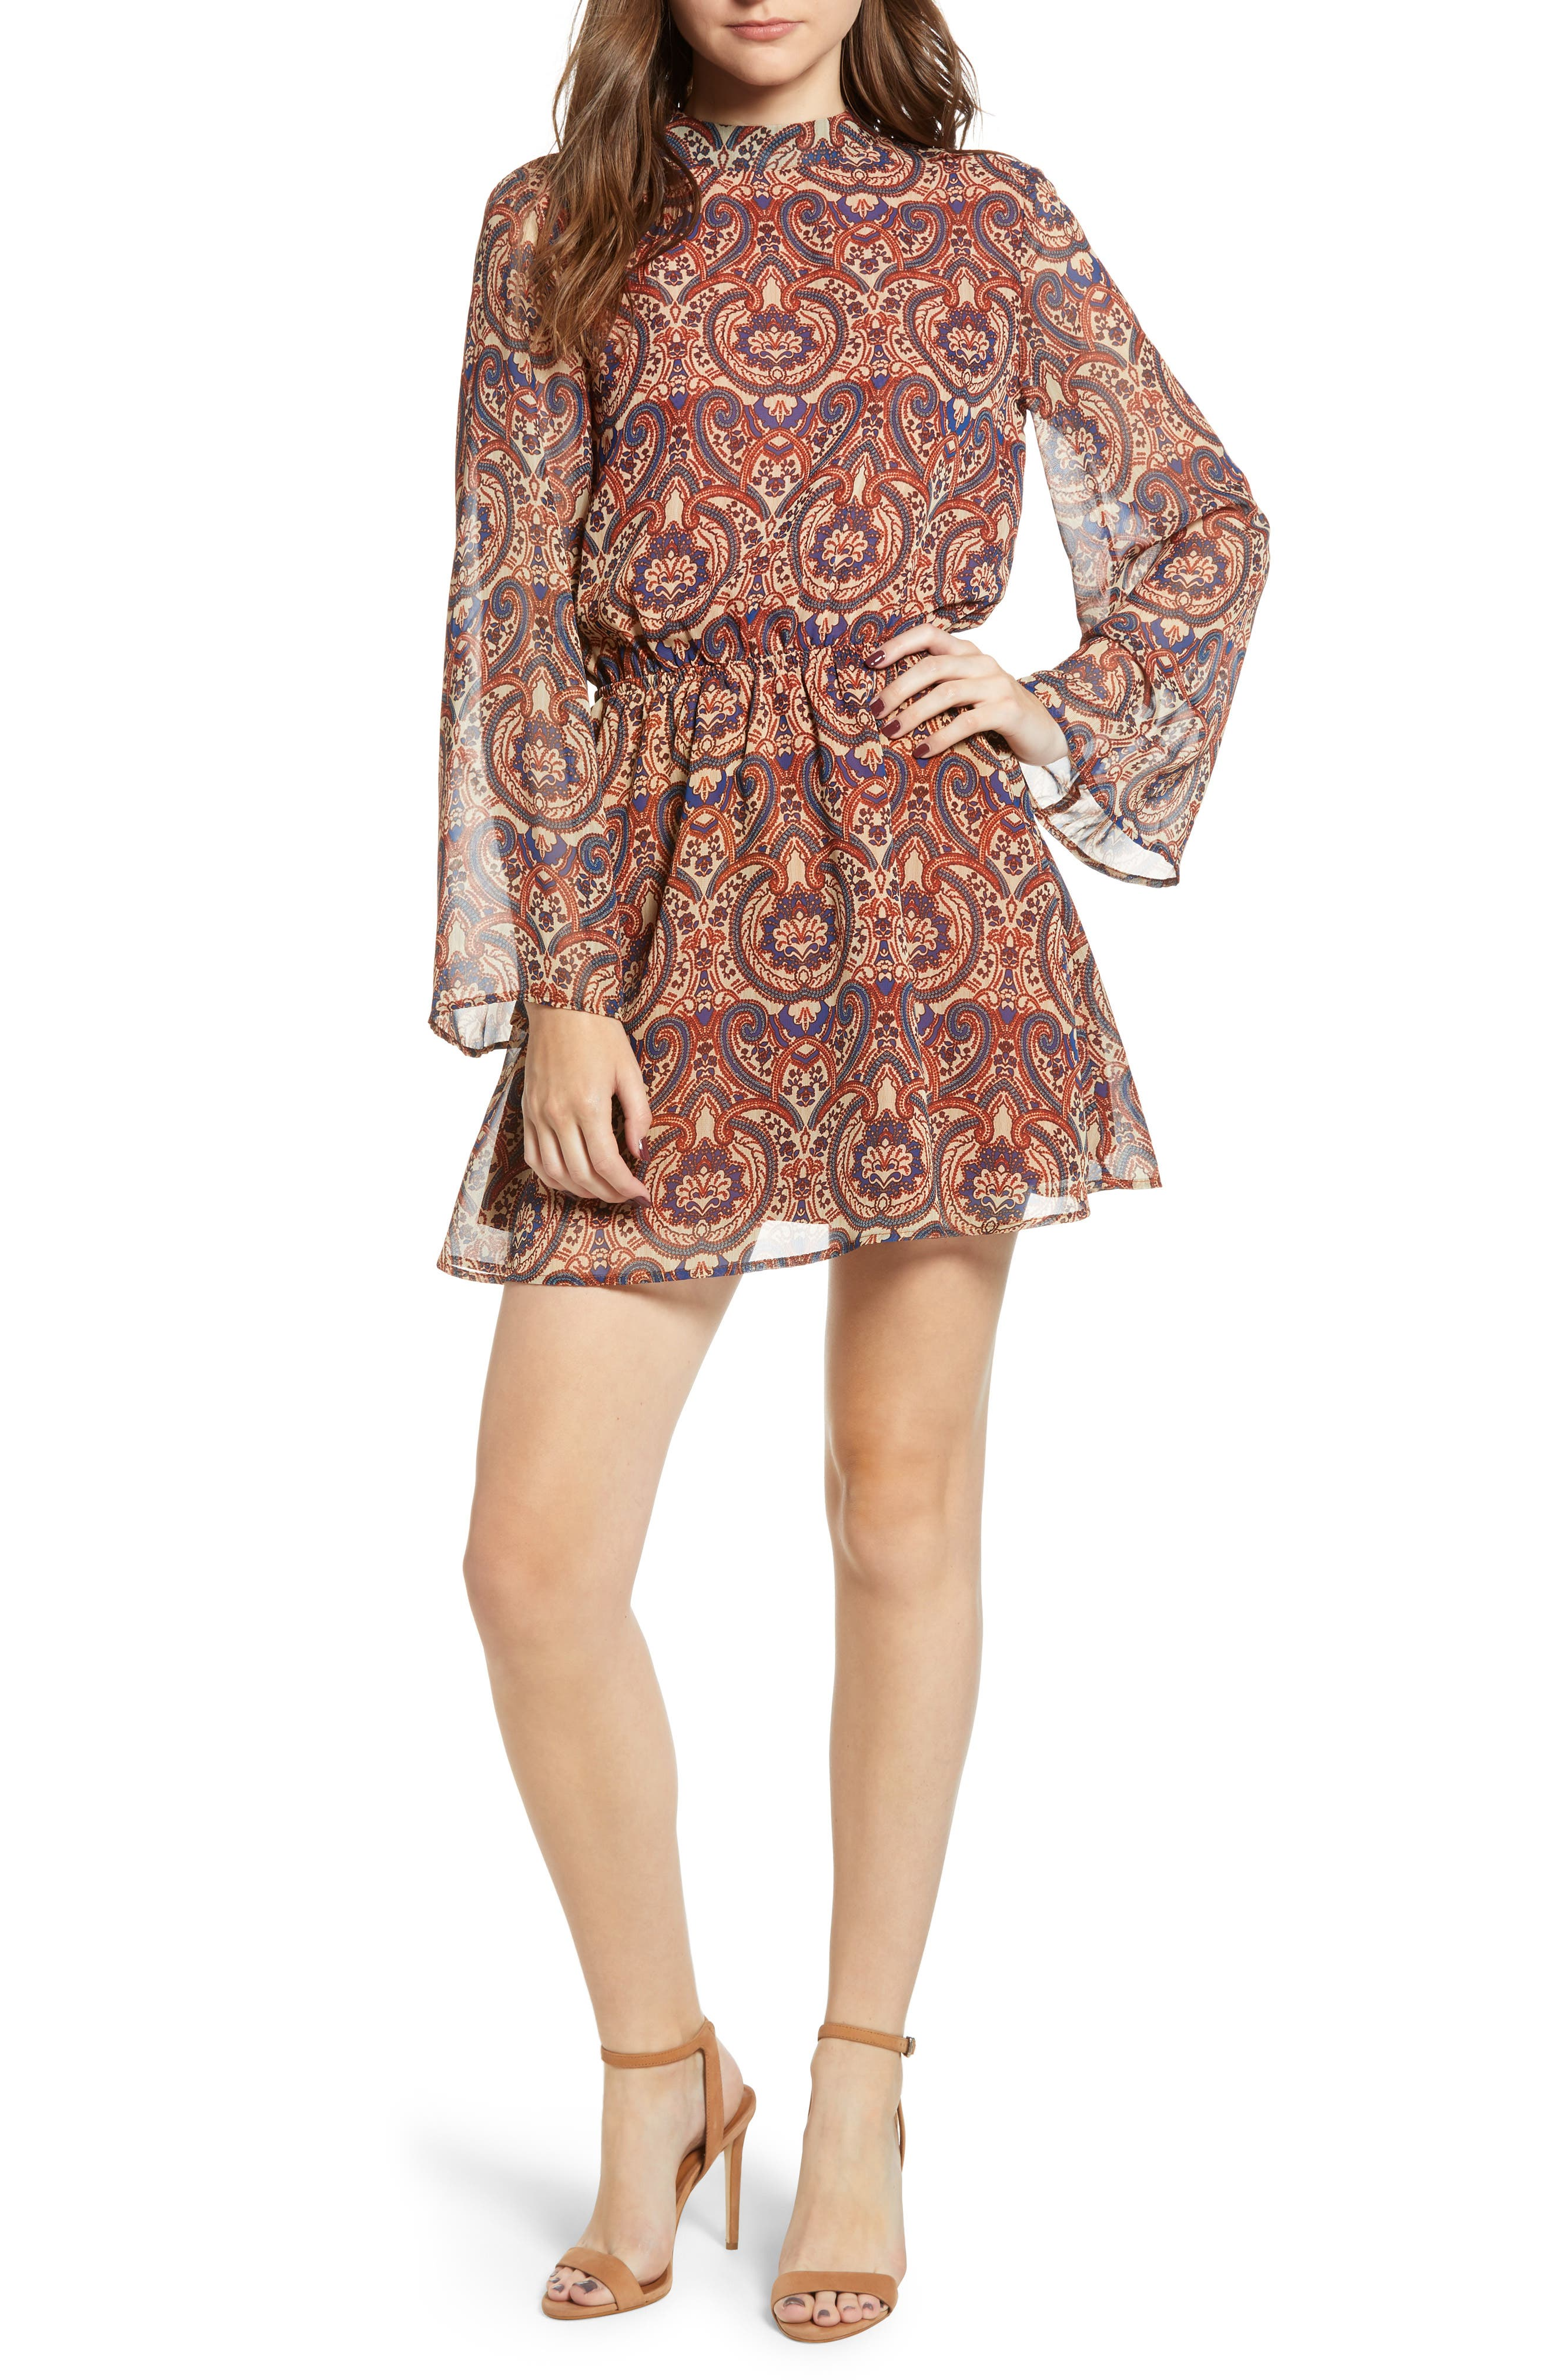 CUPCAKES AND CASHMERE Malory Printed Tie-Back Short Dress in Cognac